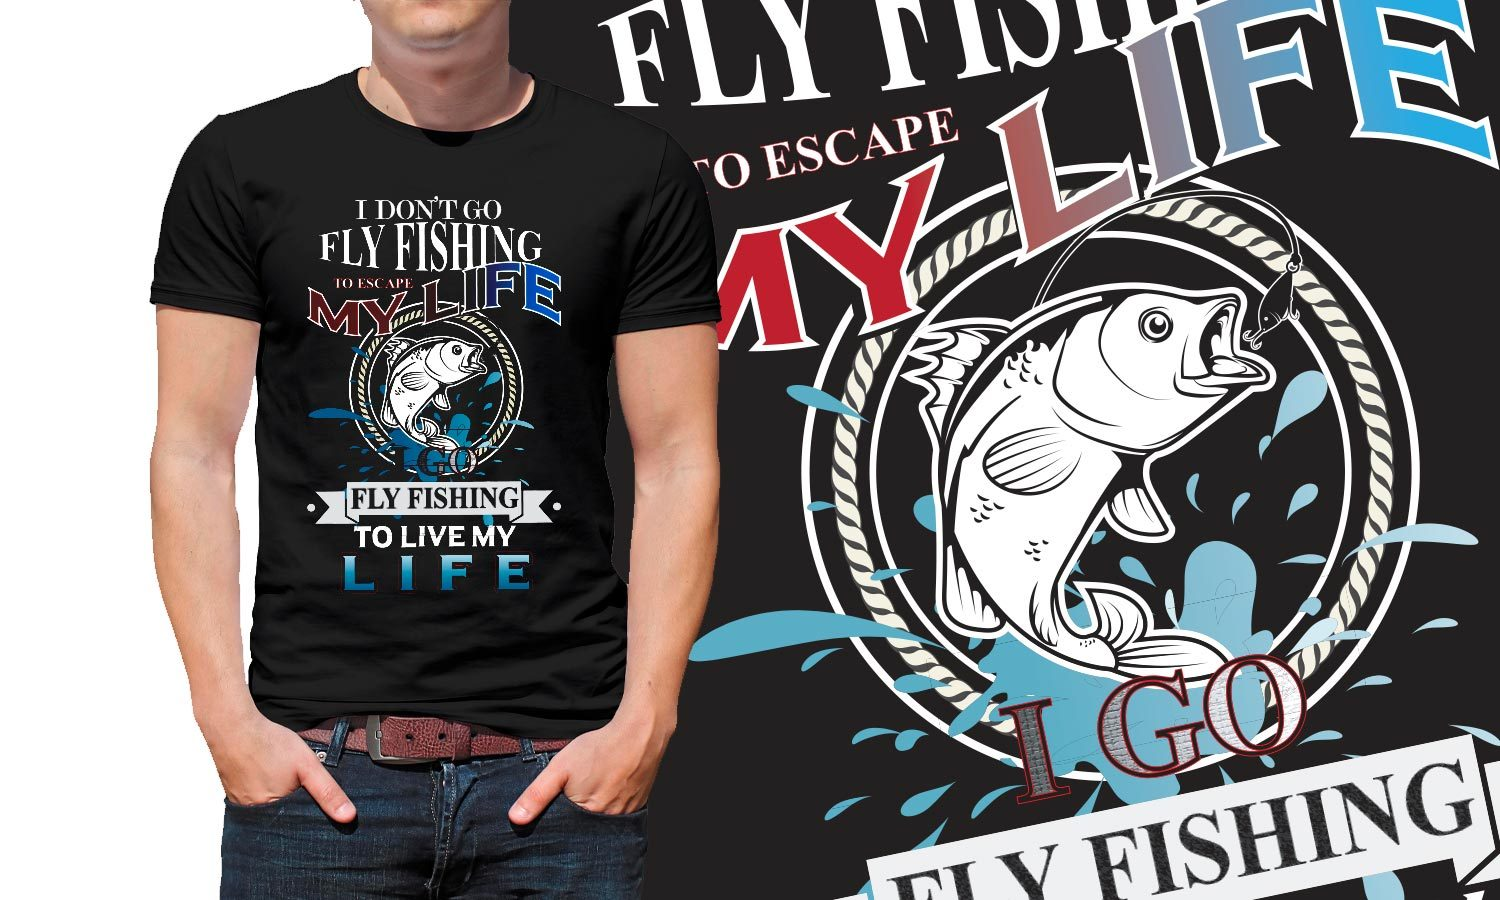 Fishing Life - Printed T-Shirt for Men, Women and Kids - TS161